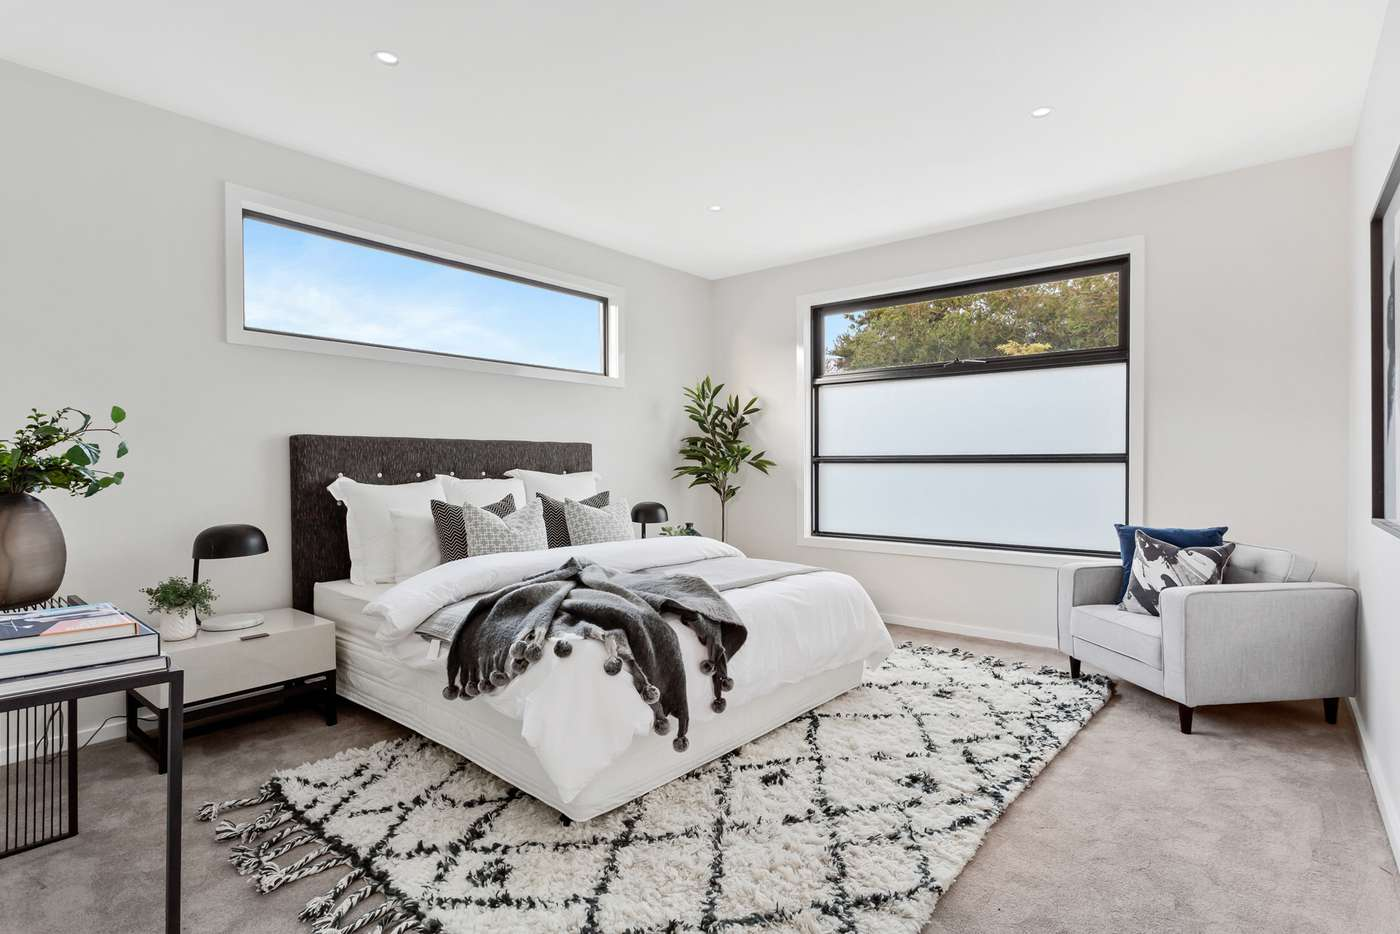 Sixth view of Homely house listing, 36 Dion Road, Glen Waverley VIC 3150